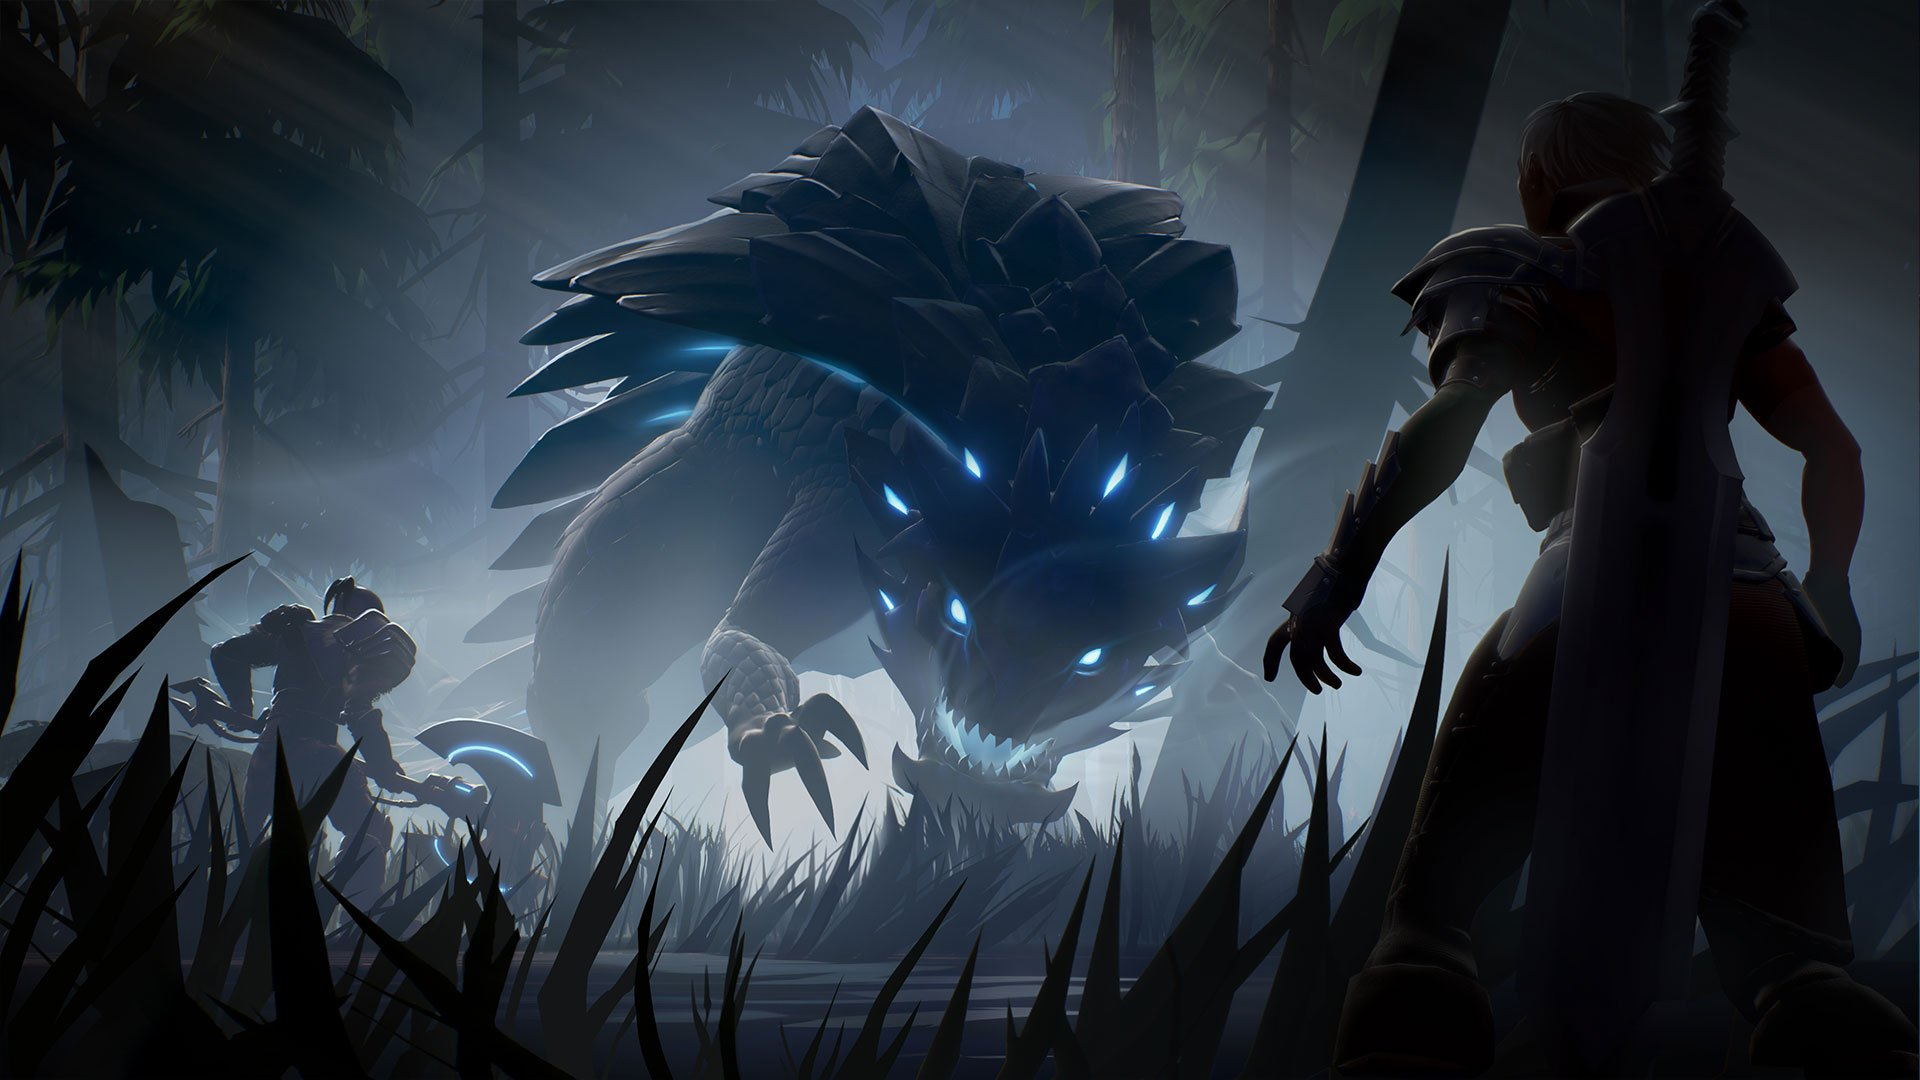 The Lantern emits billowing lights that guide you in the direction of the Behemoth you're hunting in Dauntless.